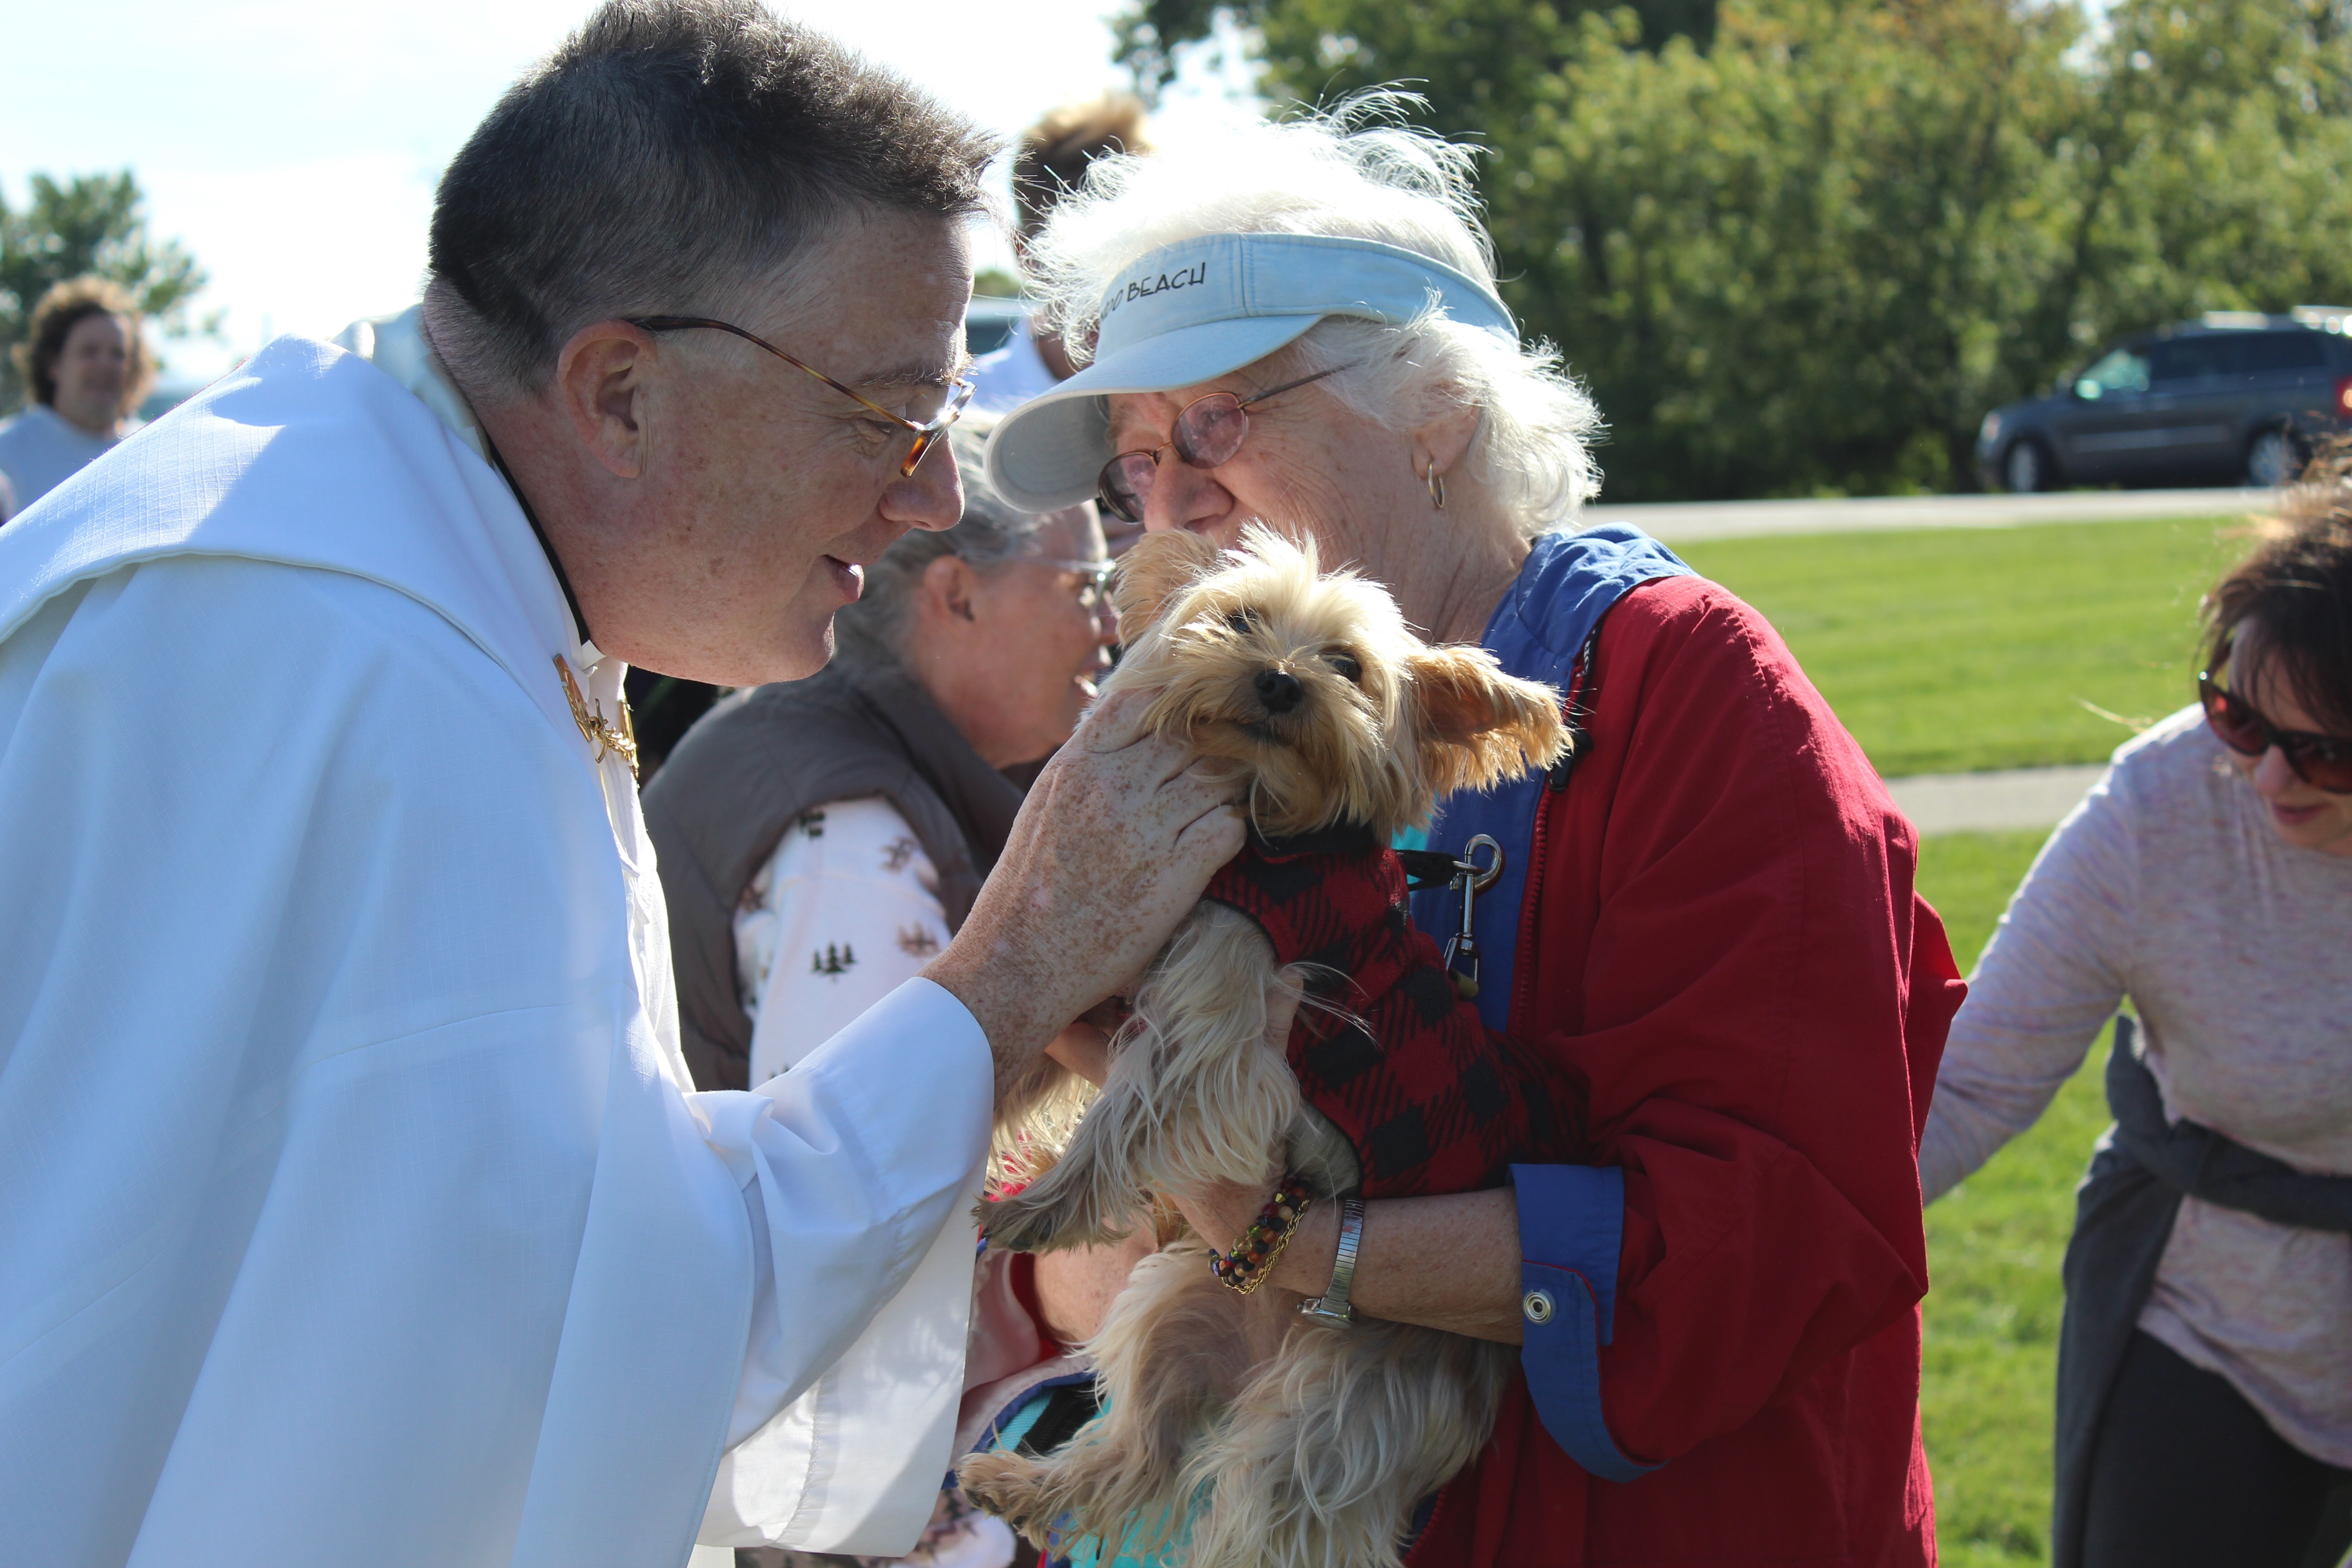 St. Joseph Church blesses all creatures, great and small